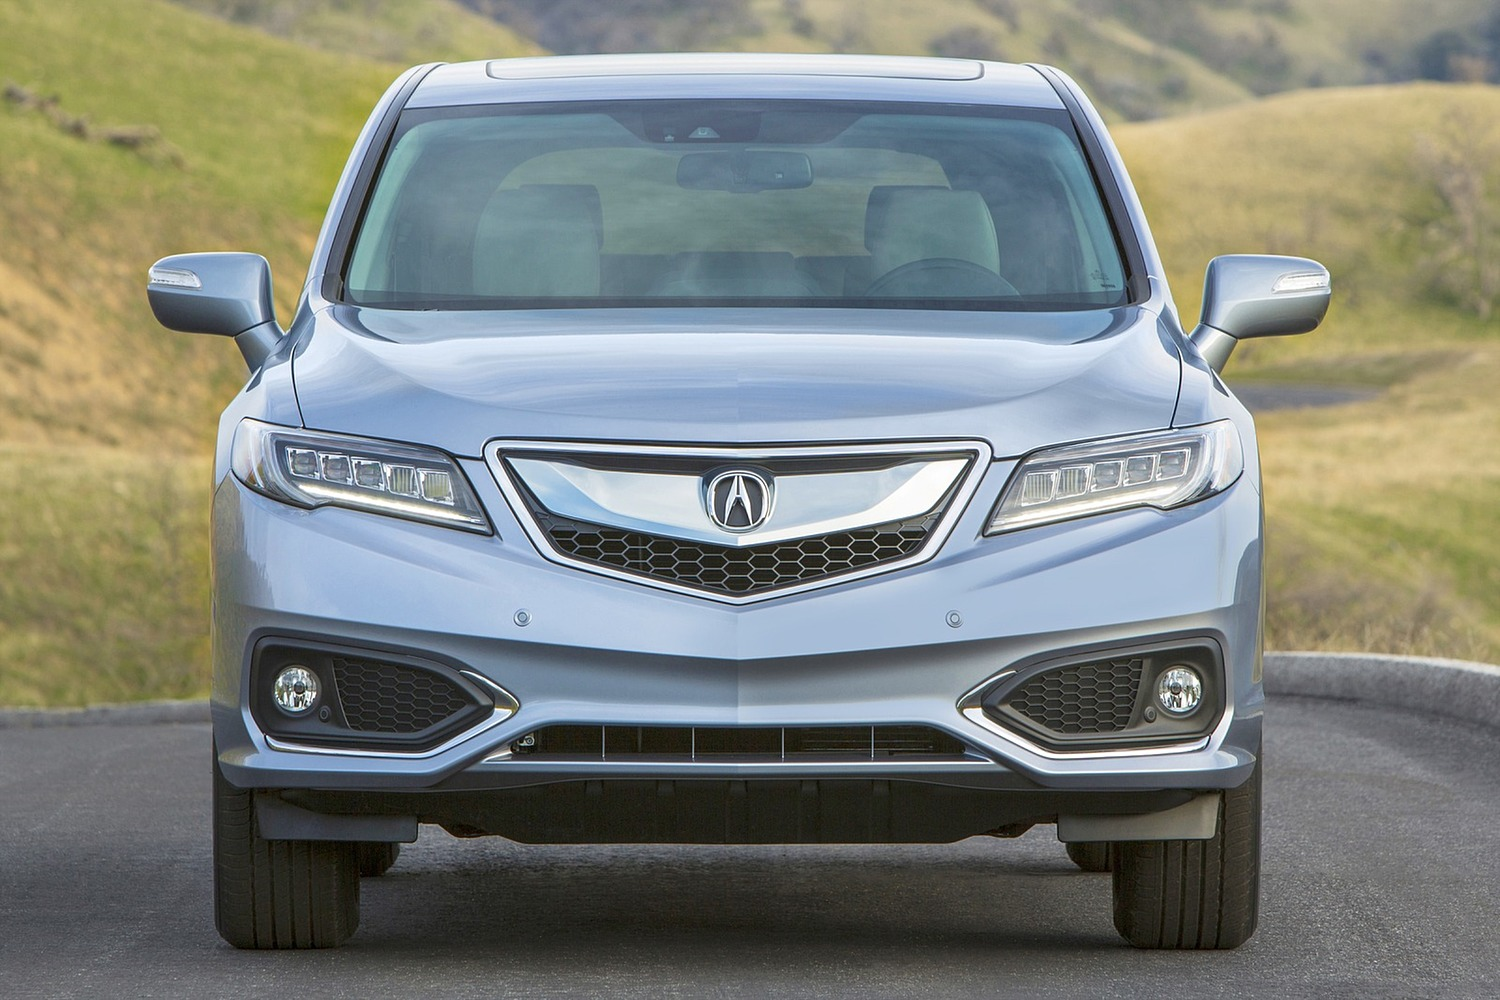 2016 Acura RDX Advance Package 4dr SUV Exterior. Advance Package Shown.